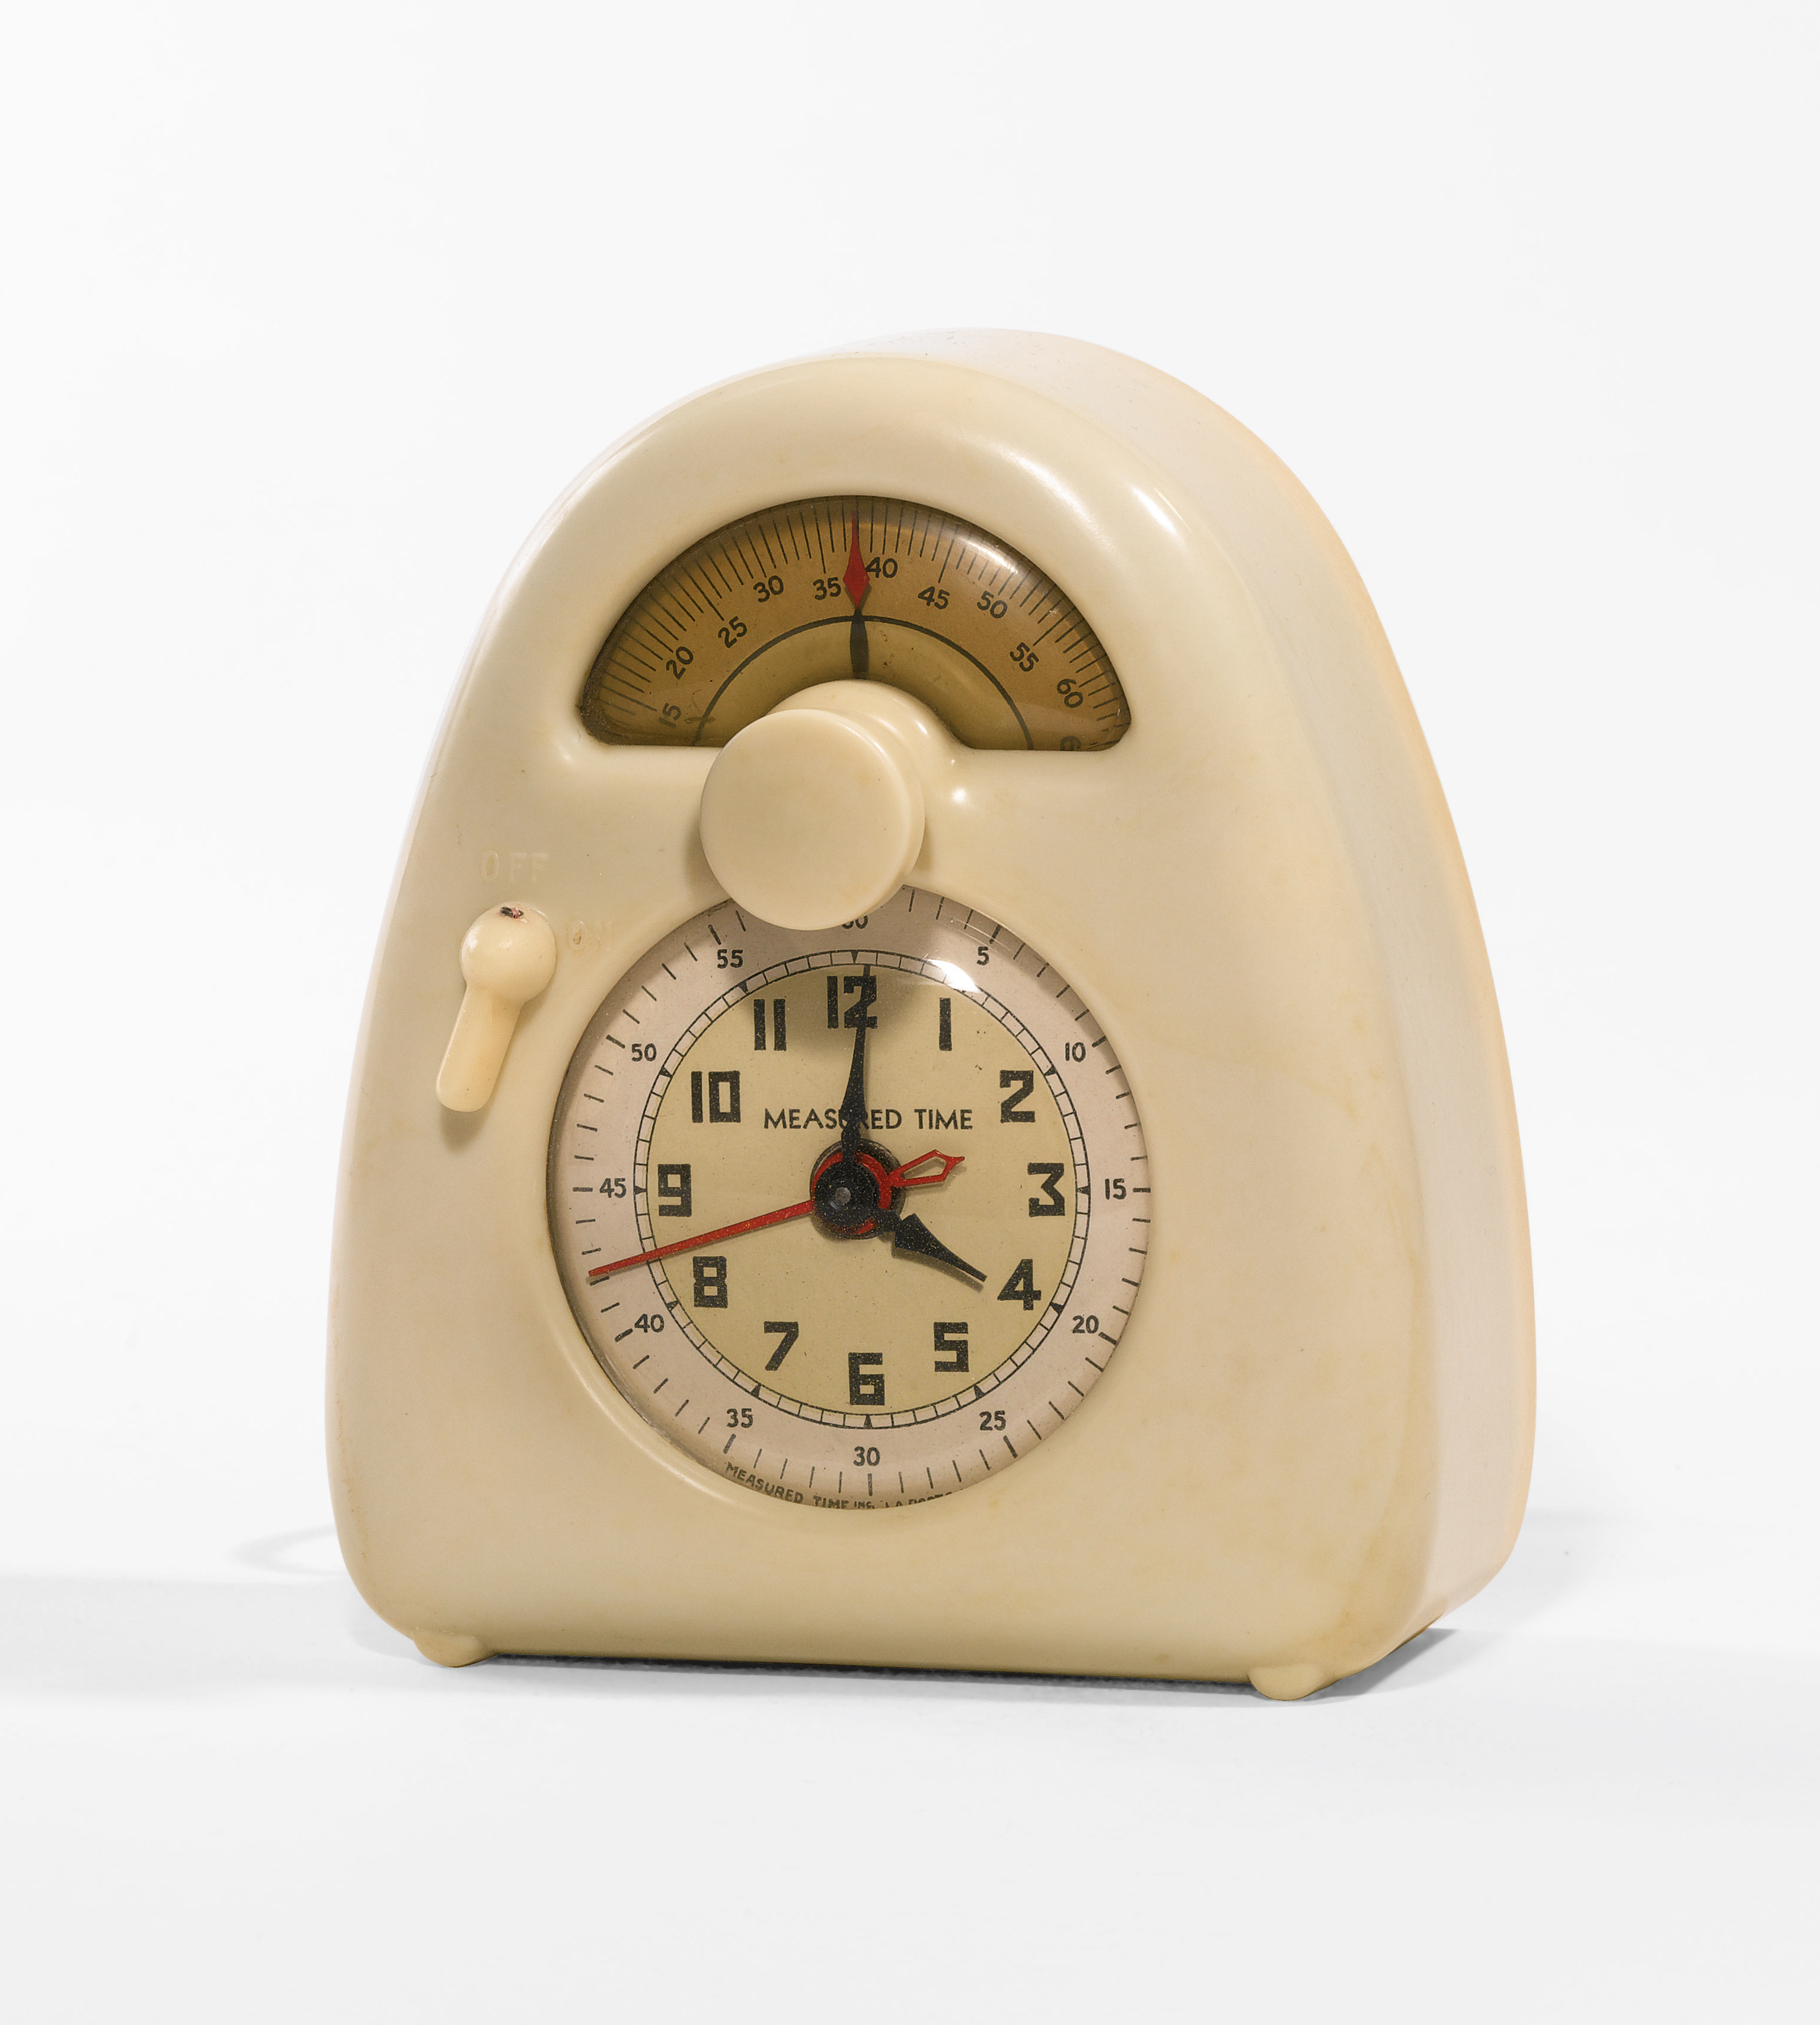 Isamu Noguchi for Measured Time, Inc., Clock and Kitchen Timer, ca. 1932. Bakelite, metal, glass, and painted metal. Gift from the George R. Kravis II Collection M2018.246. Photo: Sotheby's, © Sotheby's, Inc. 2016, © 2017 The Isamu Noguchi Foundation and Garden Museum, New York / Artists Rights Society (ARS), New York.